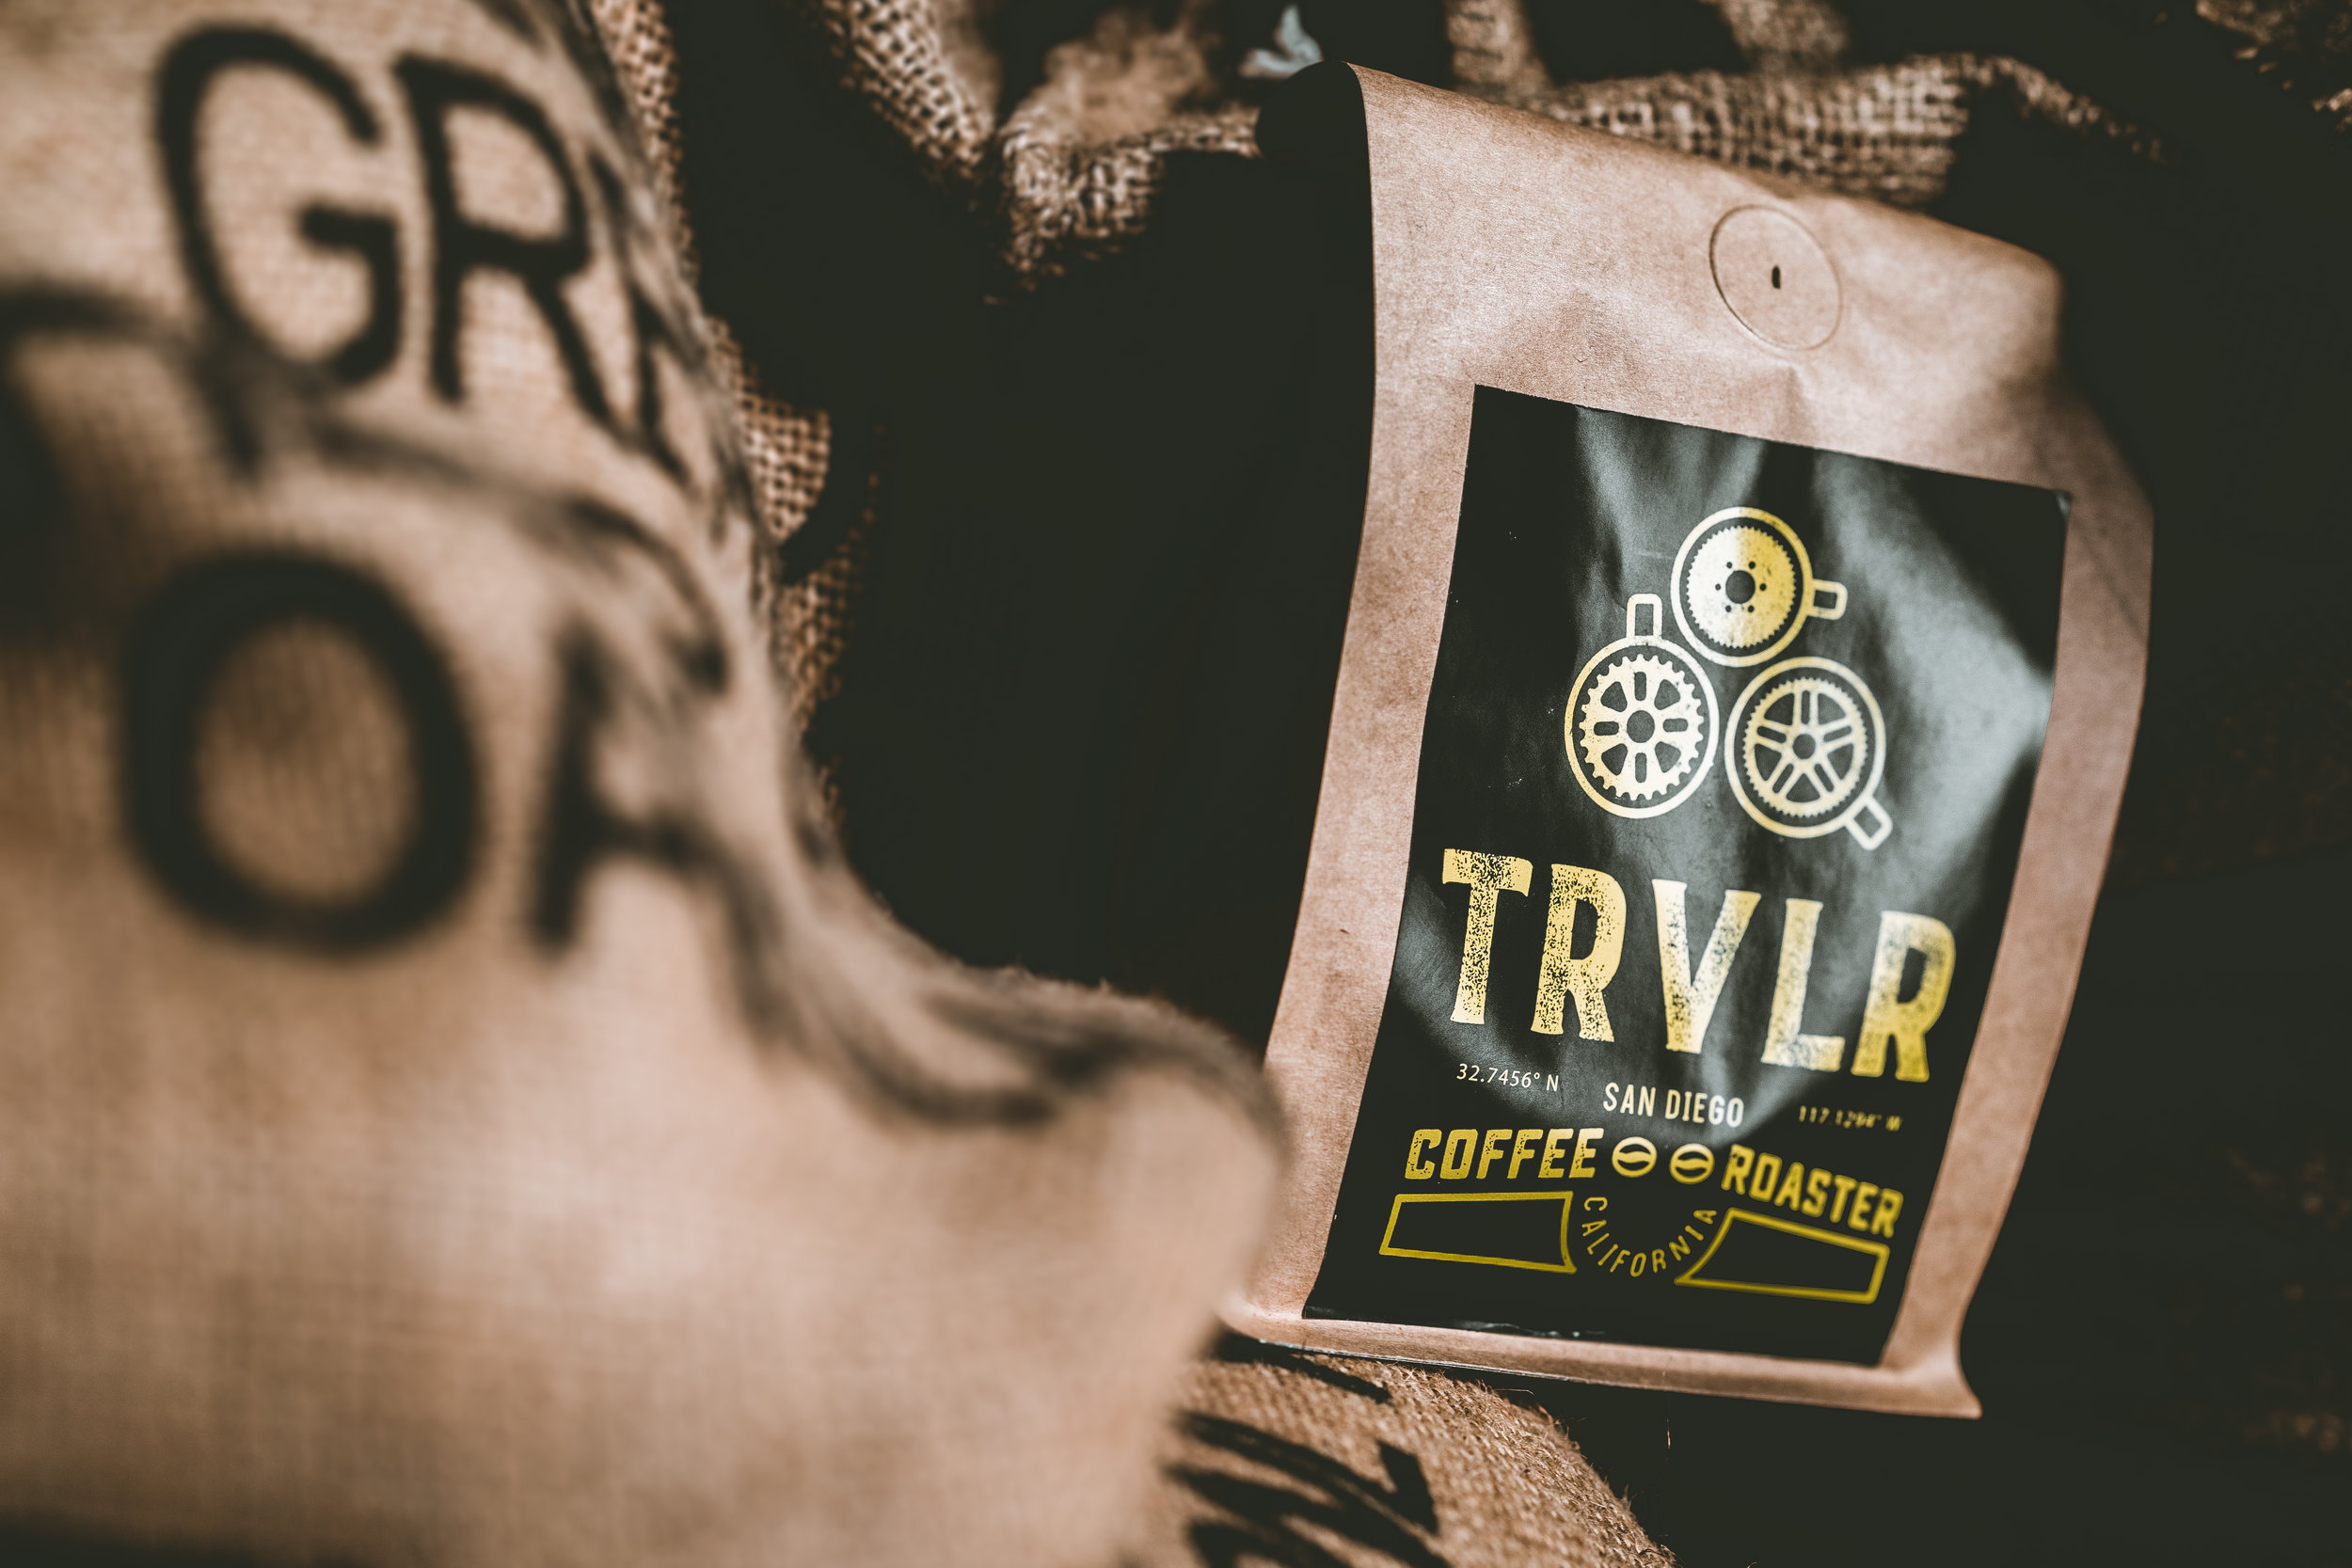 Brand Photography by Gretchen Kamp & Co. for TRVLR Coffee Roaster